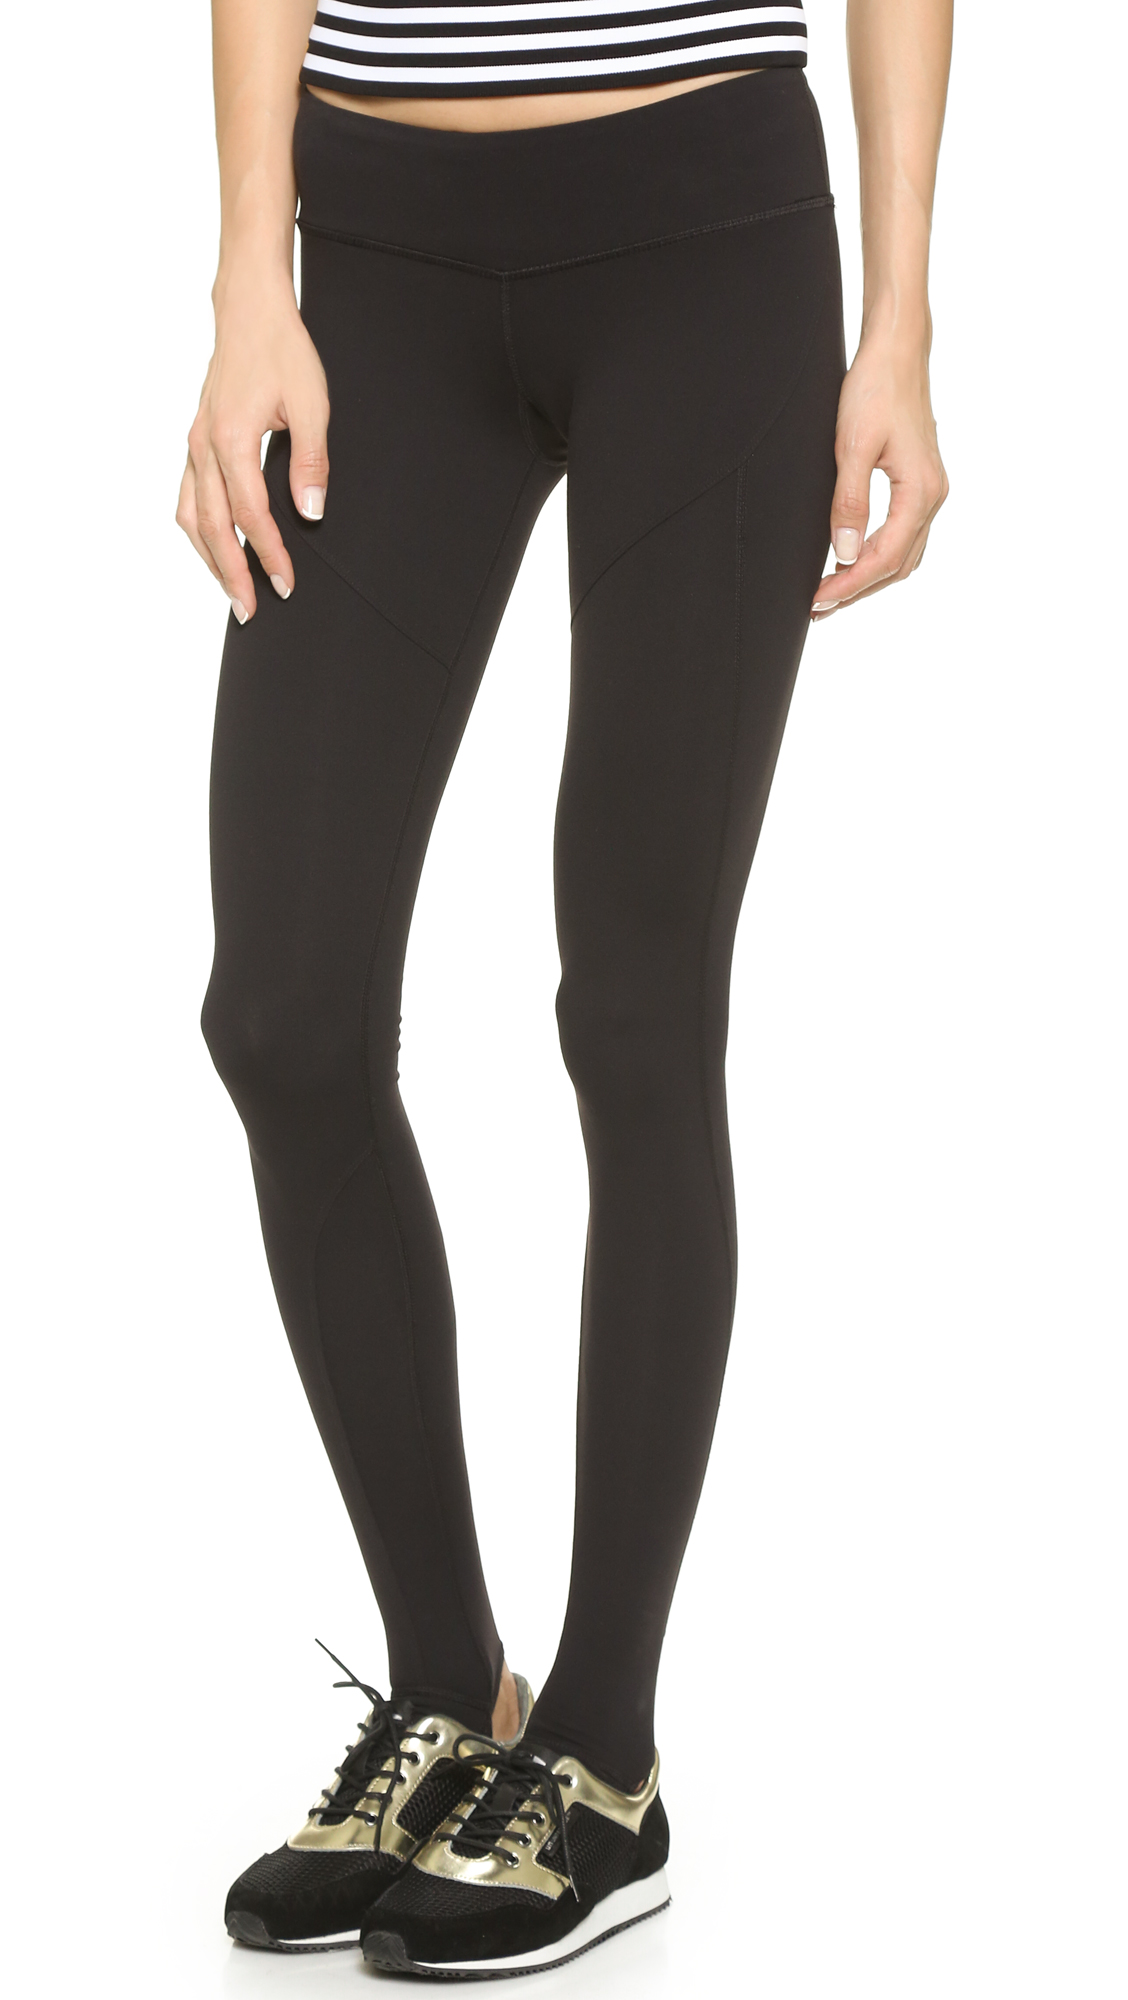 These high rise Splits59 stirrup leggings have curved, overlock seams. Textured grip at cutout heel. Fabric: Activewear jersey. 88% nylon/12% spandex. Wash cold. Imported, China. Measurements Rise: 6.75in / 17cm Inseam: 27.25in / 69cm Measurements from size S. Available